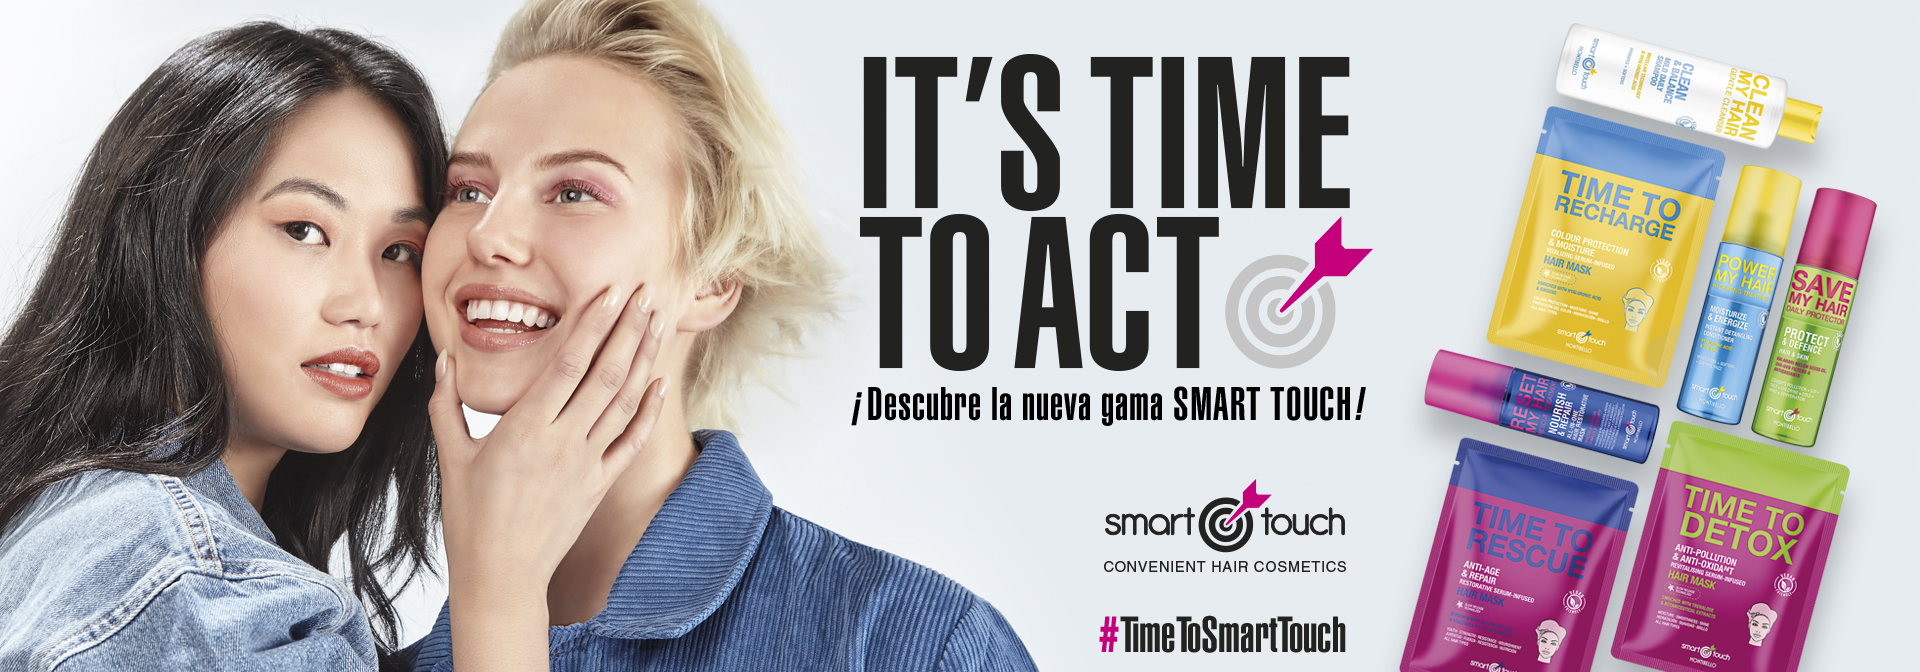 SMART TOUCH – Convenient hair cosmetics